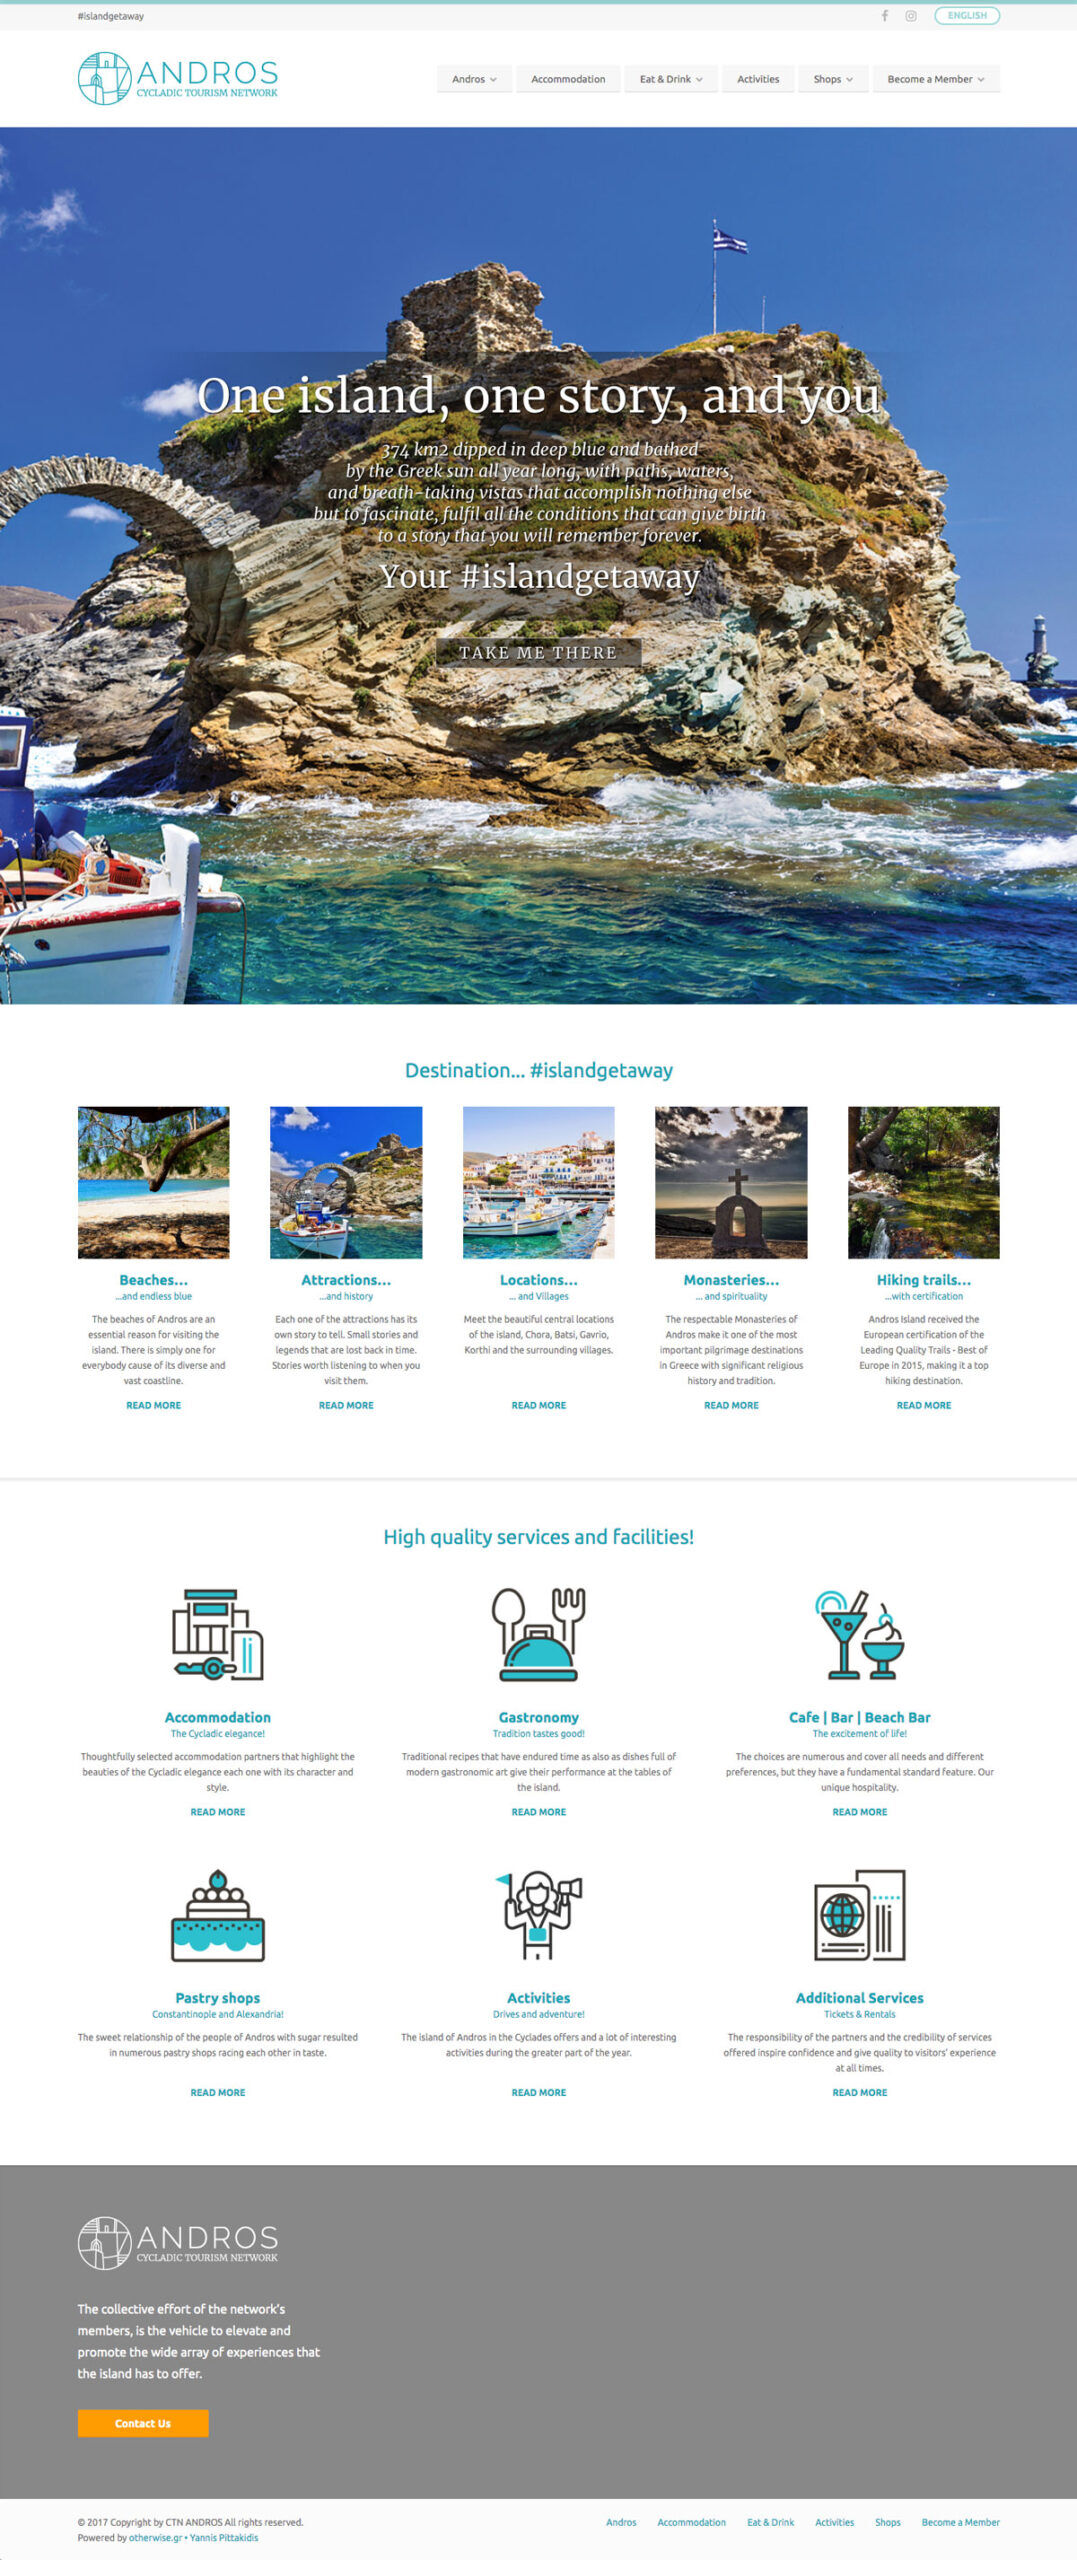 CTN – Andros Cycladic Tourism Network